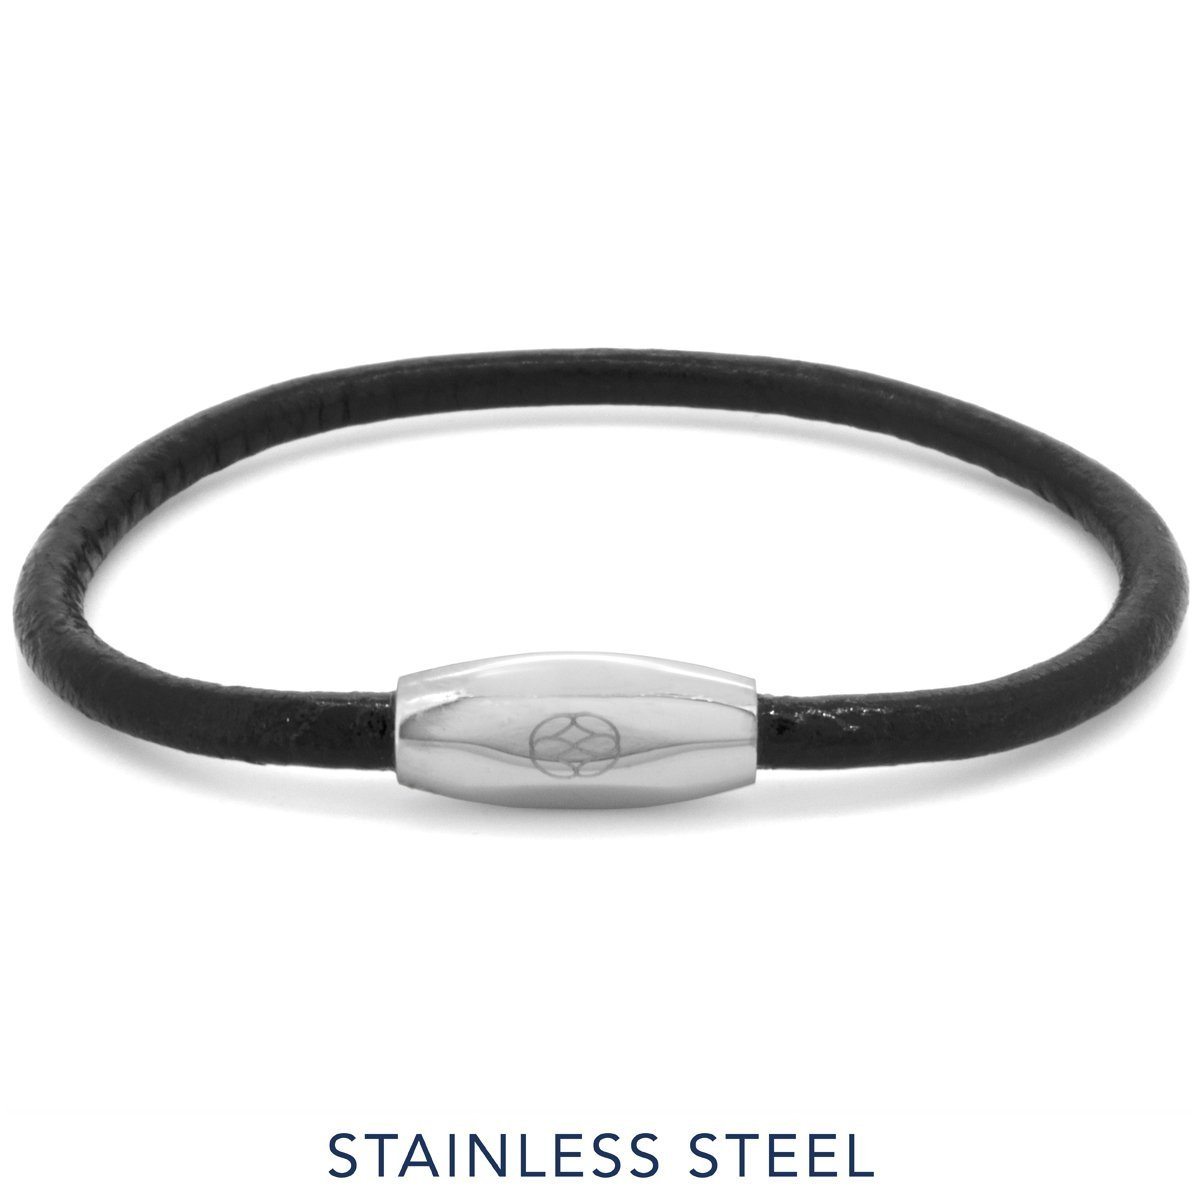 Bracelet - Numana Pelle Black Leather